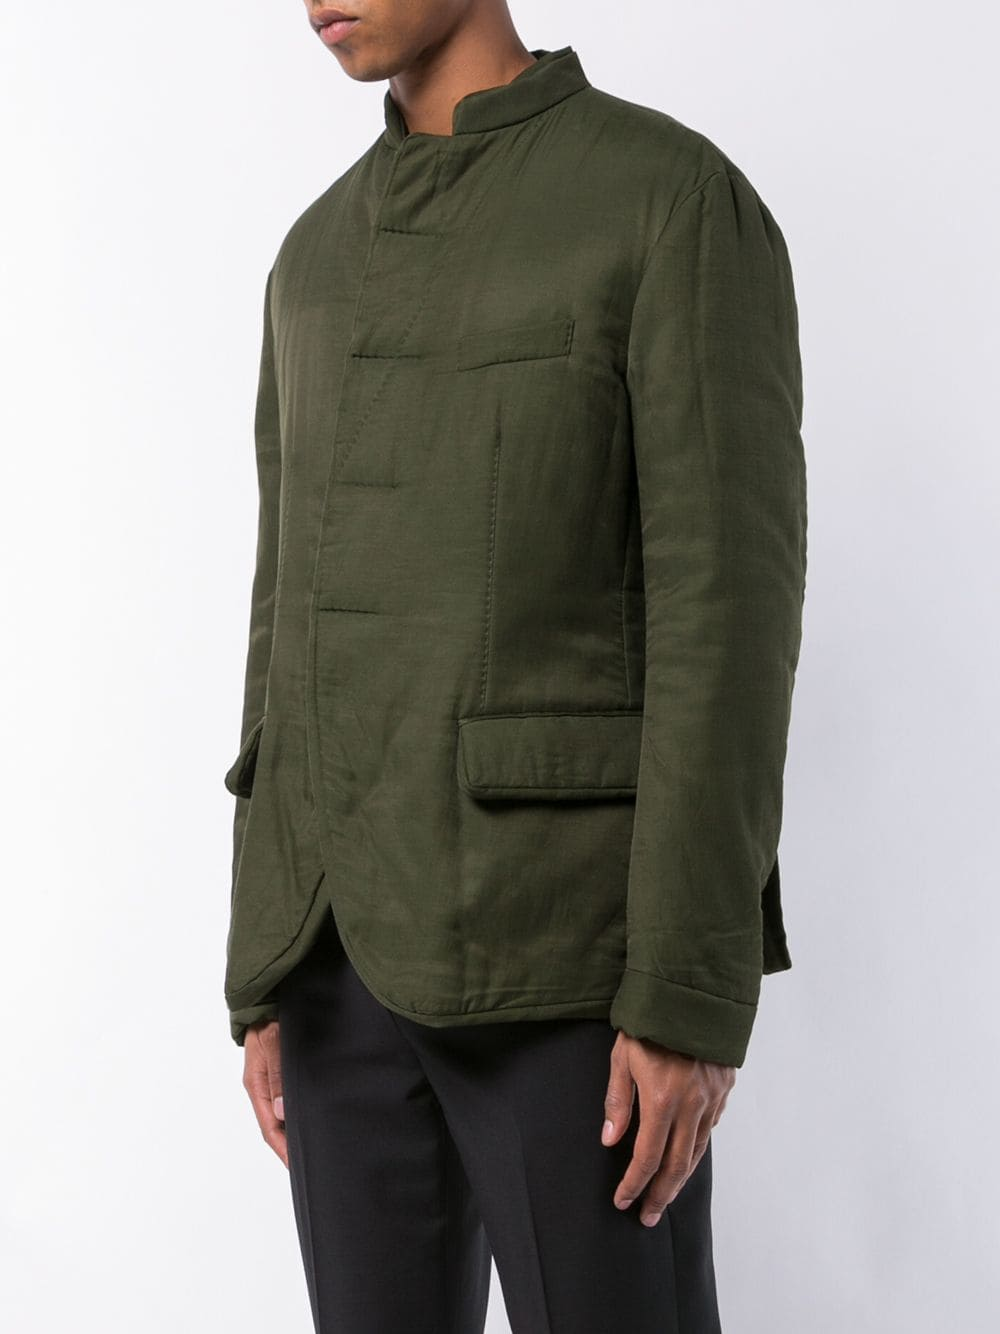 HAIDER ACKERMANN MEN MAO COLLAR JACKET 184-3006-150-035